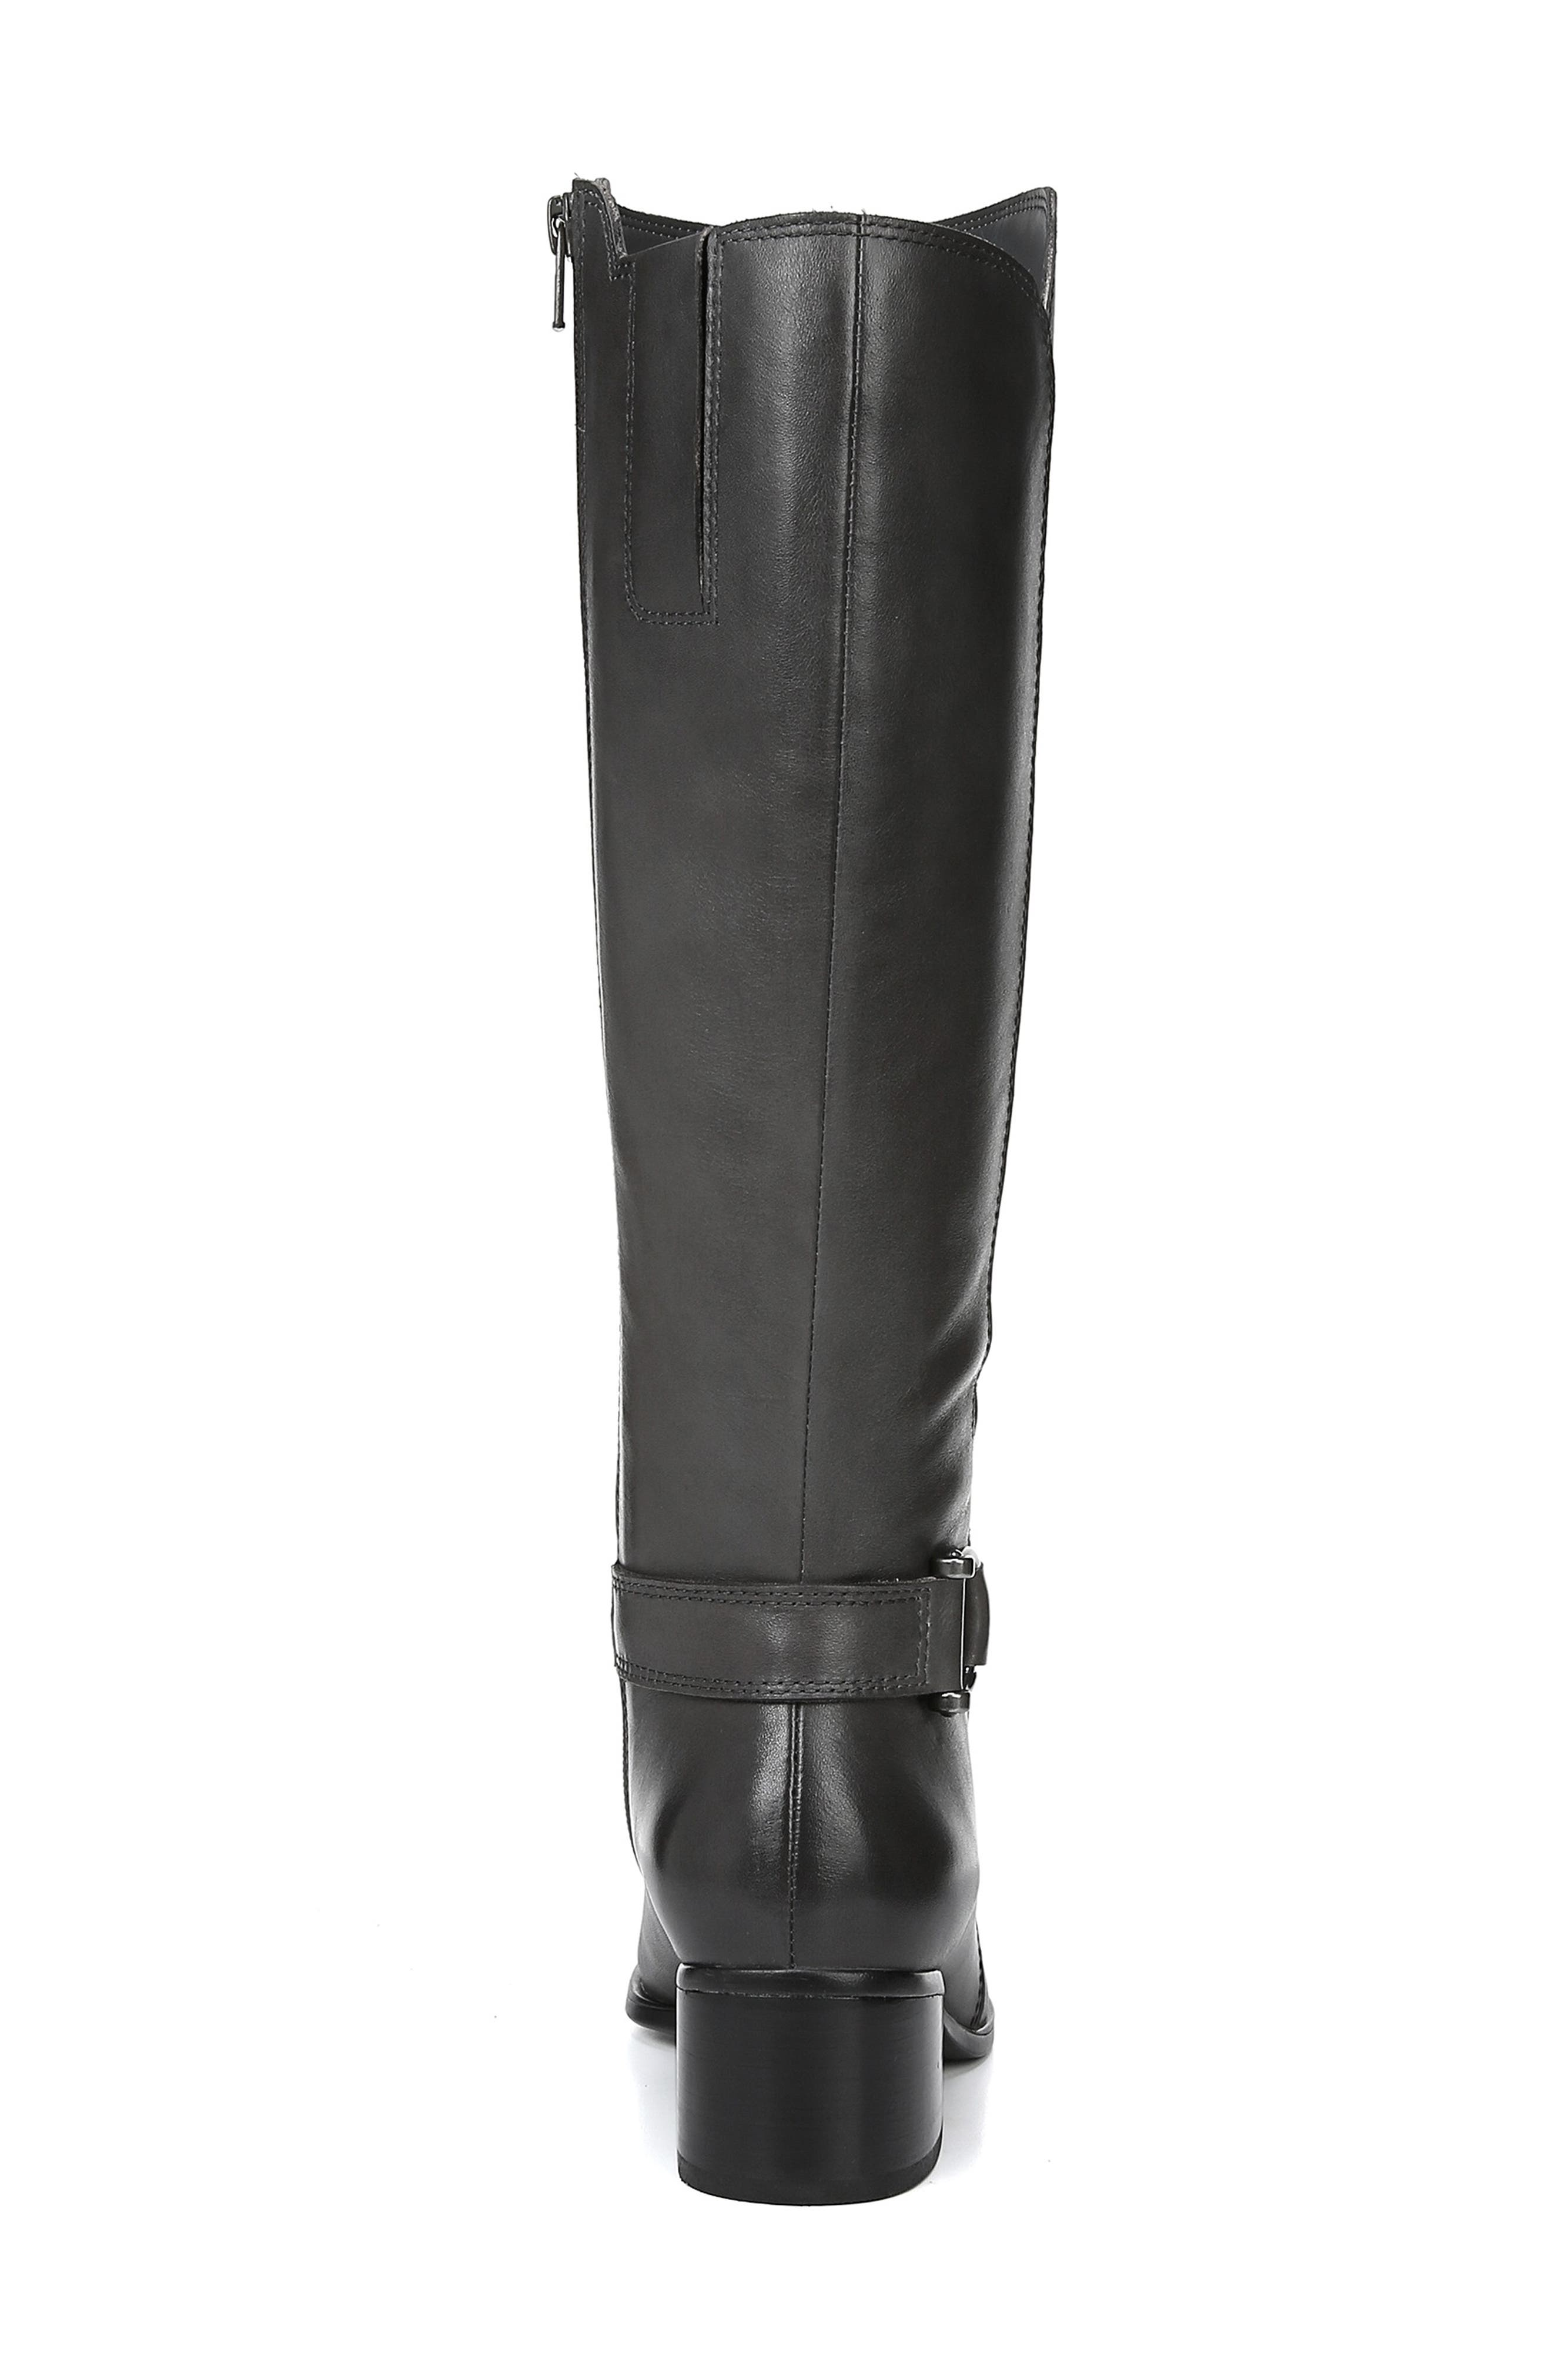 Dane Knee High Riding Boot,                             Alternate thumbnail 7, color,                             GREY LEATHER